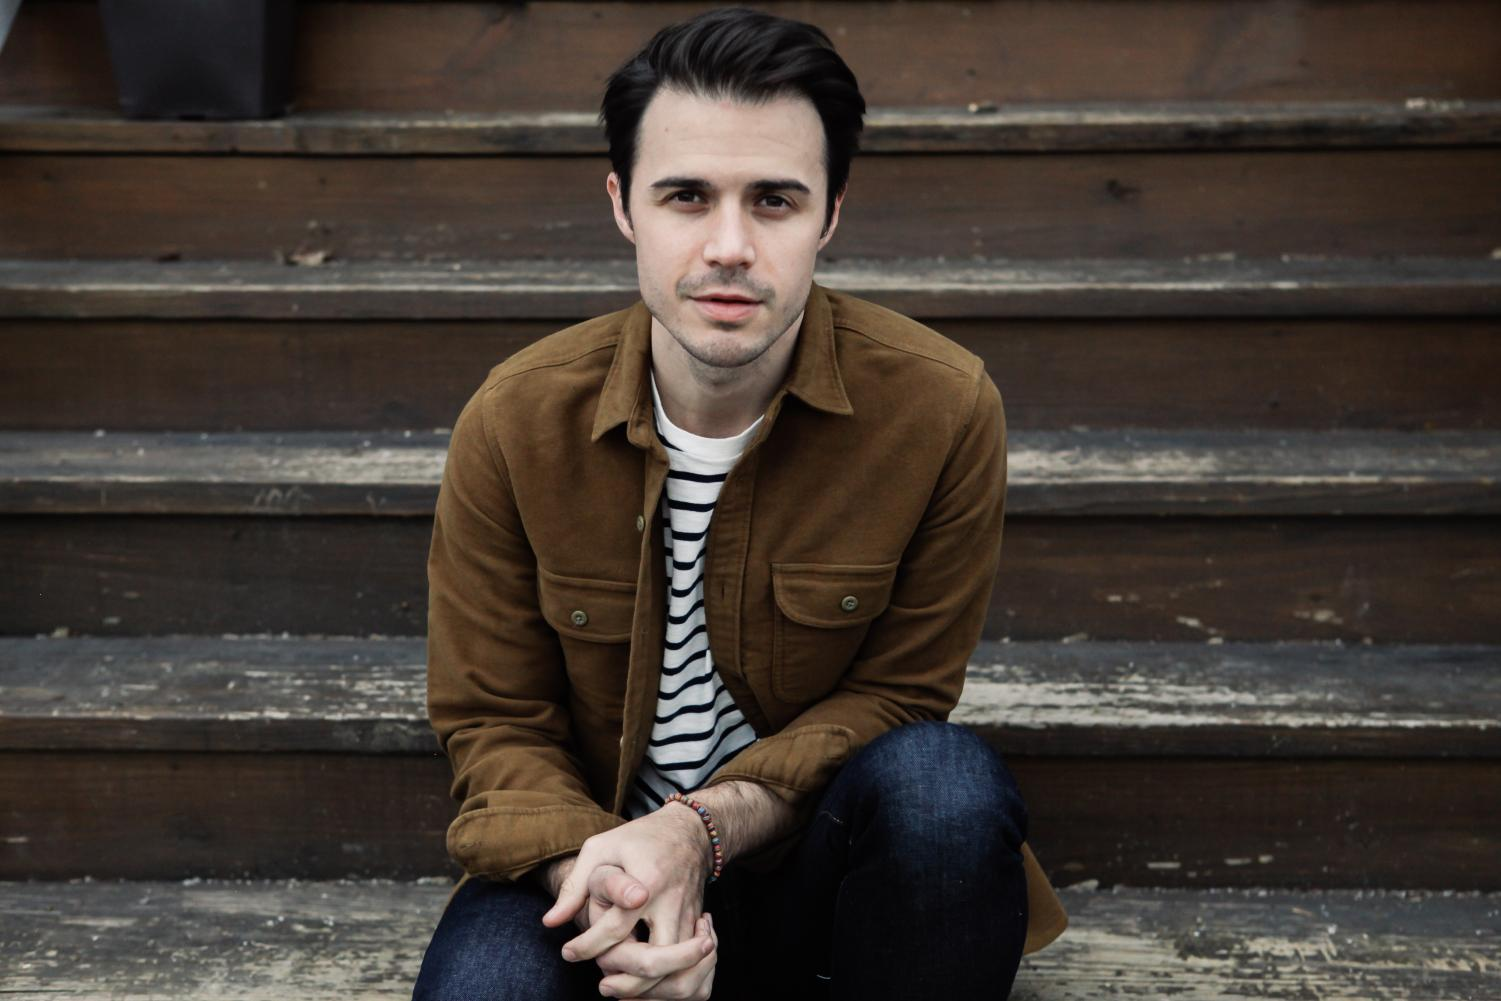 Kris Allen is opening up with his new album Letting You In, a more personal look into his experiences. Allen is set to play a sold-out show April 14 at Lincoln Hall, 2424 N. Lincoln Ave.